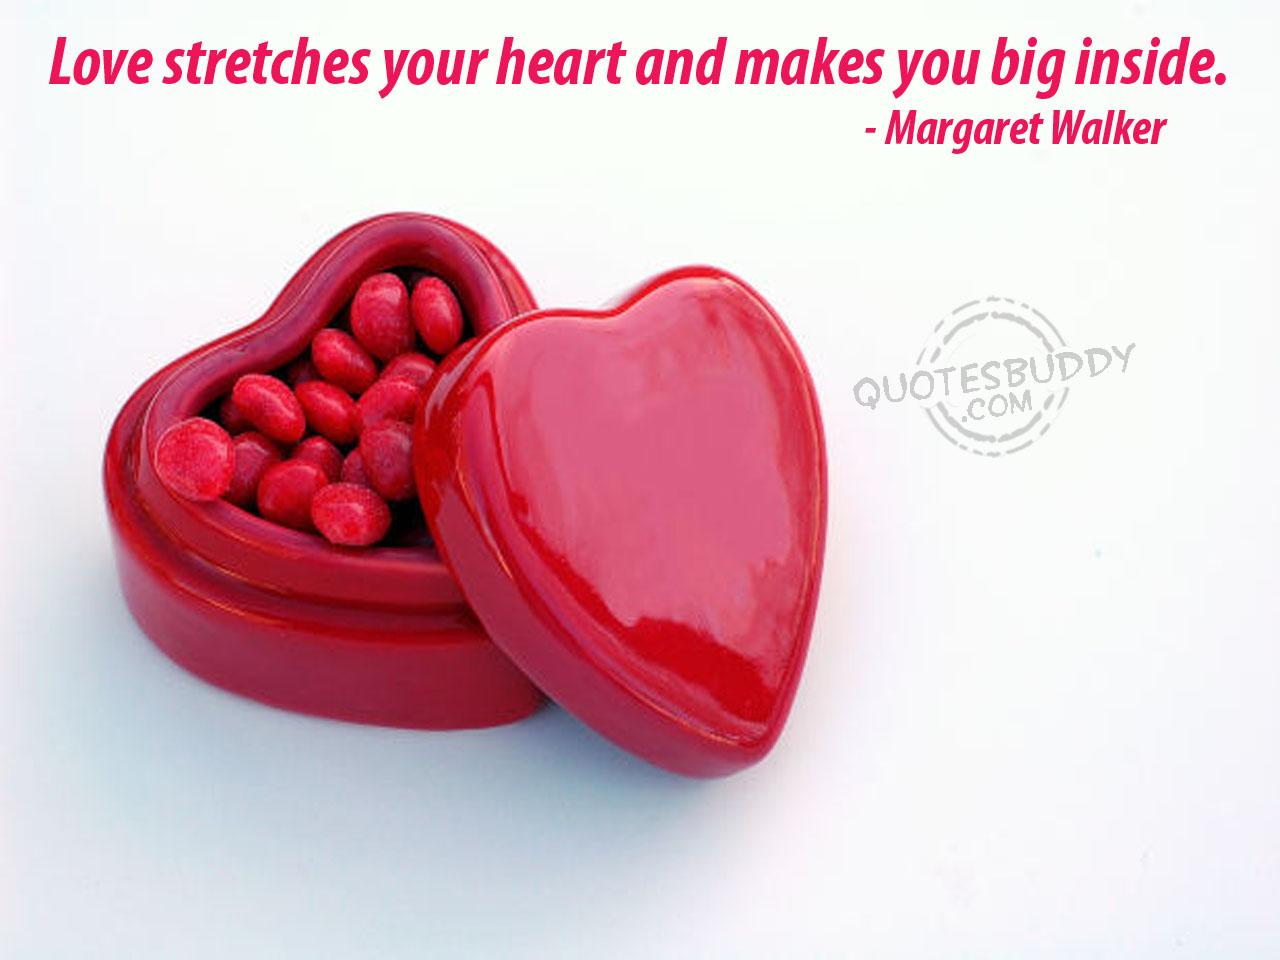 Heart Love Quotes Love Quotes For Her From The Heart 13 Free Hd Wallpaper